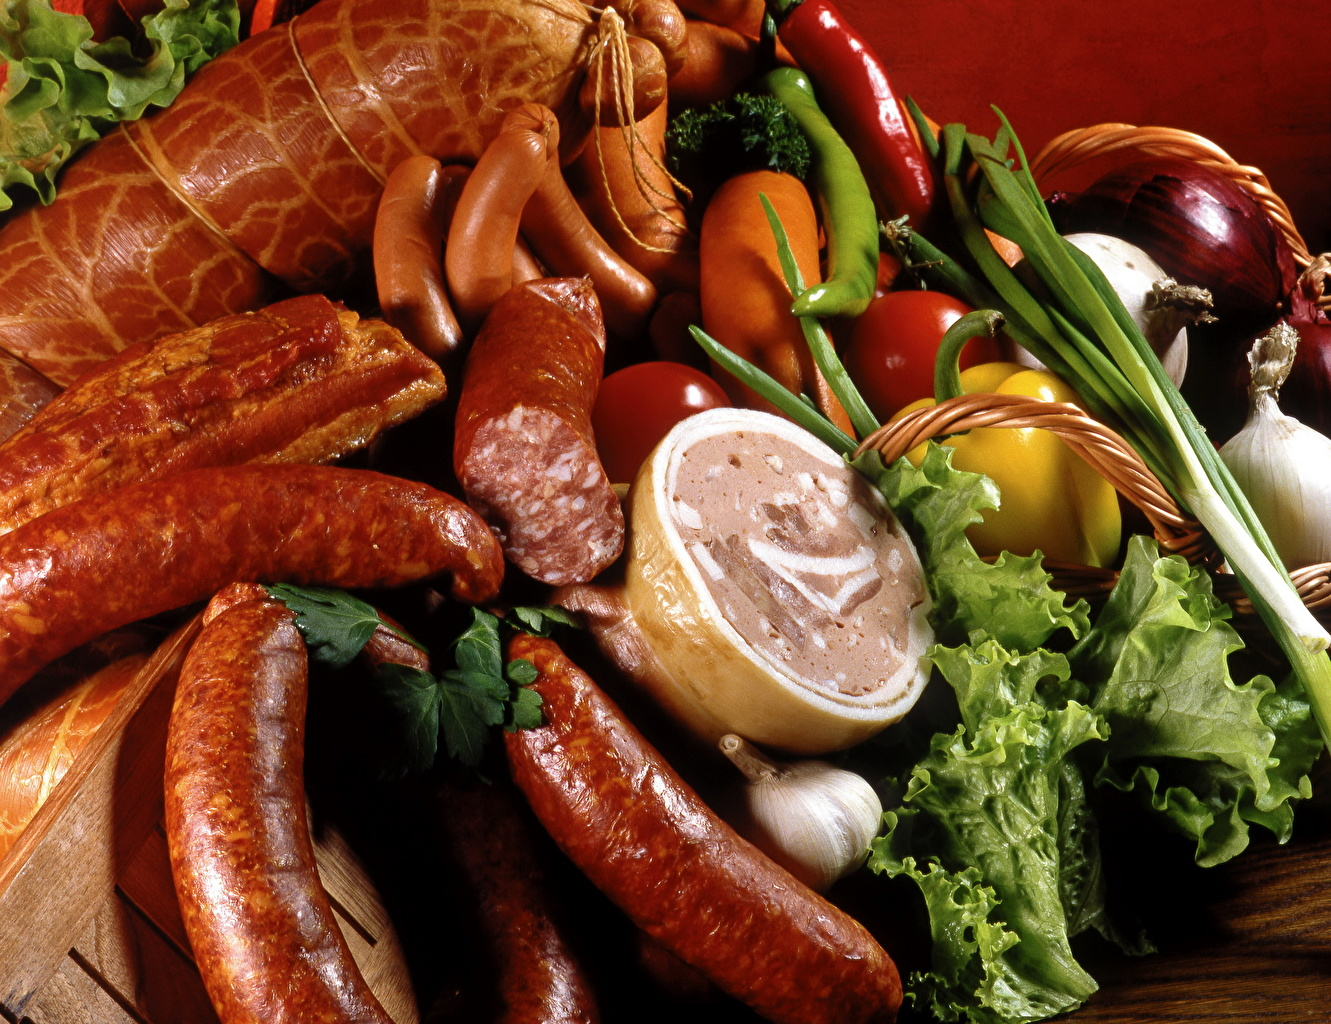 Image Sausage Food Meat products